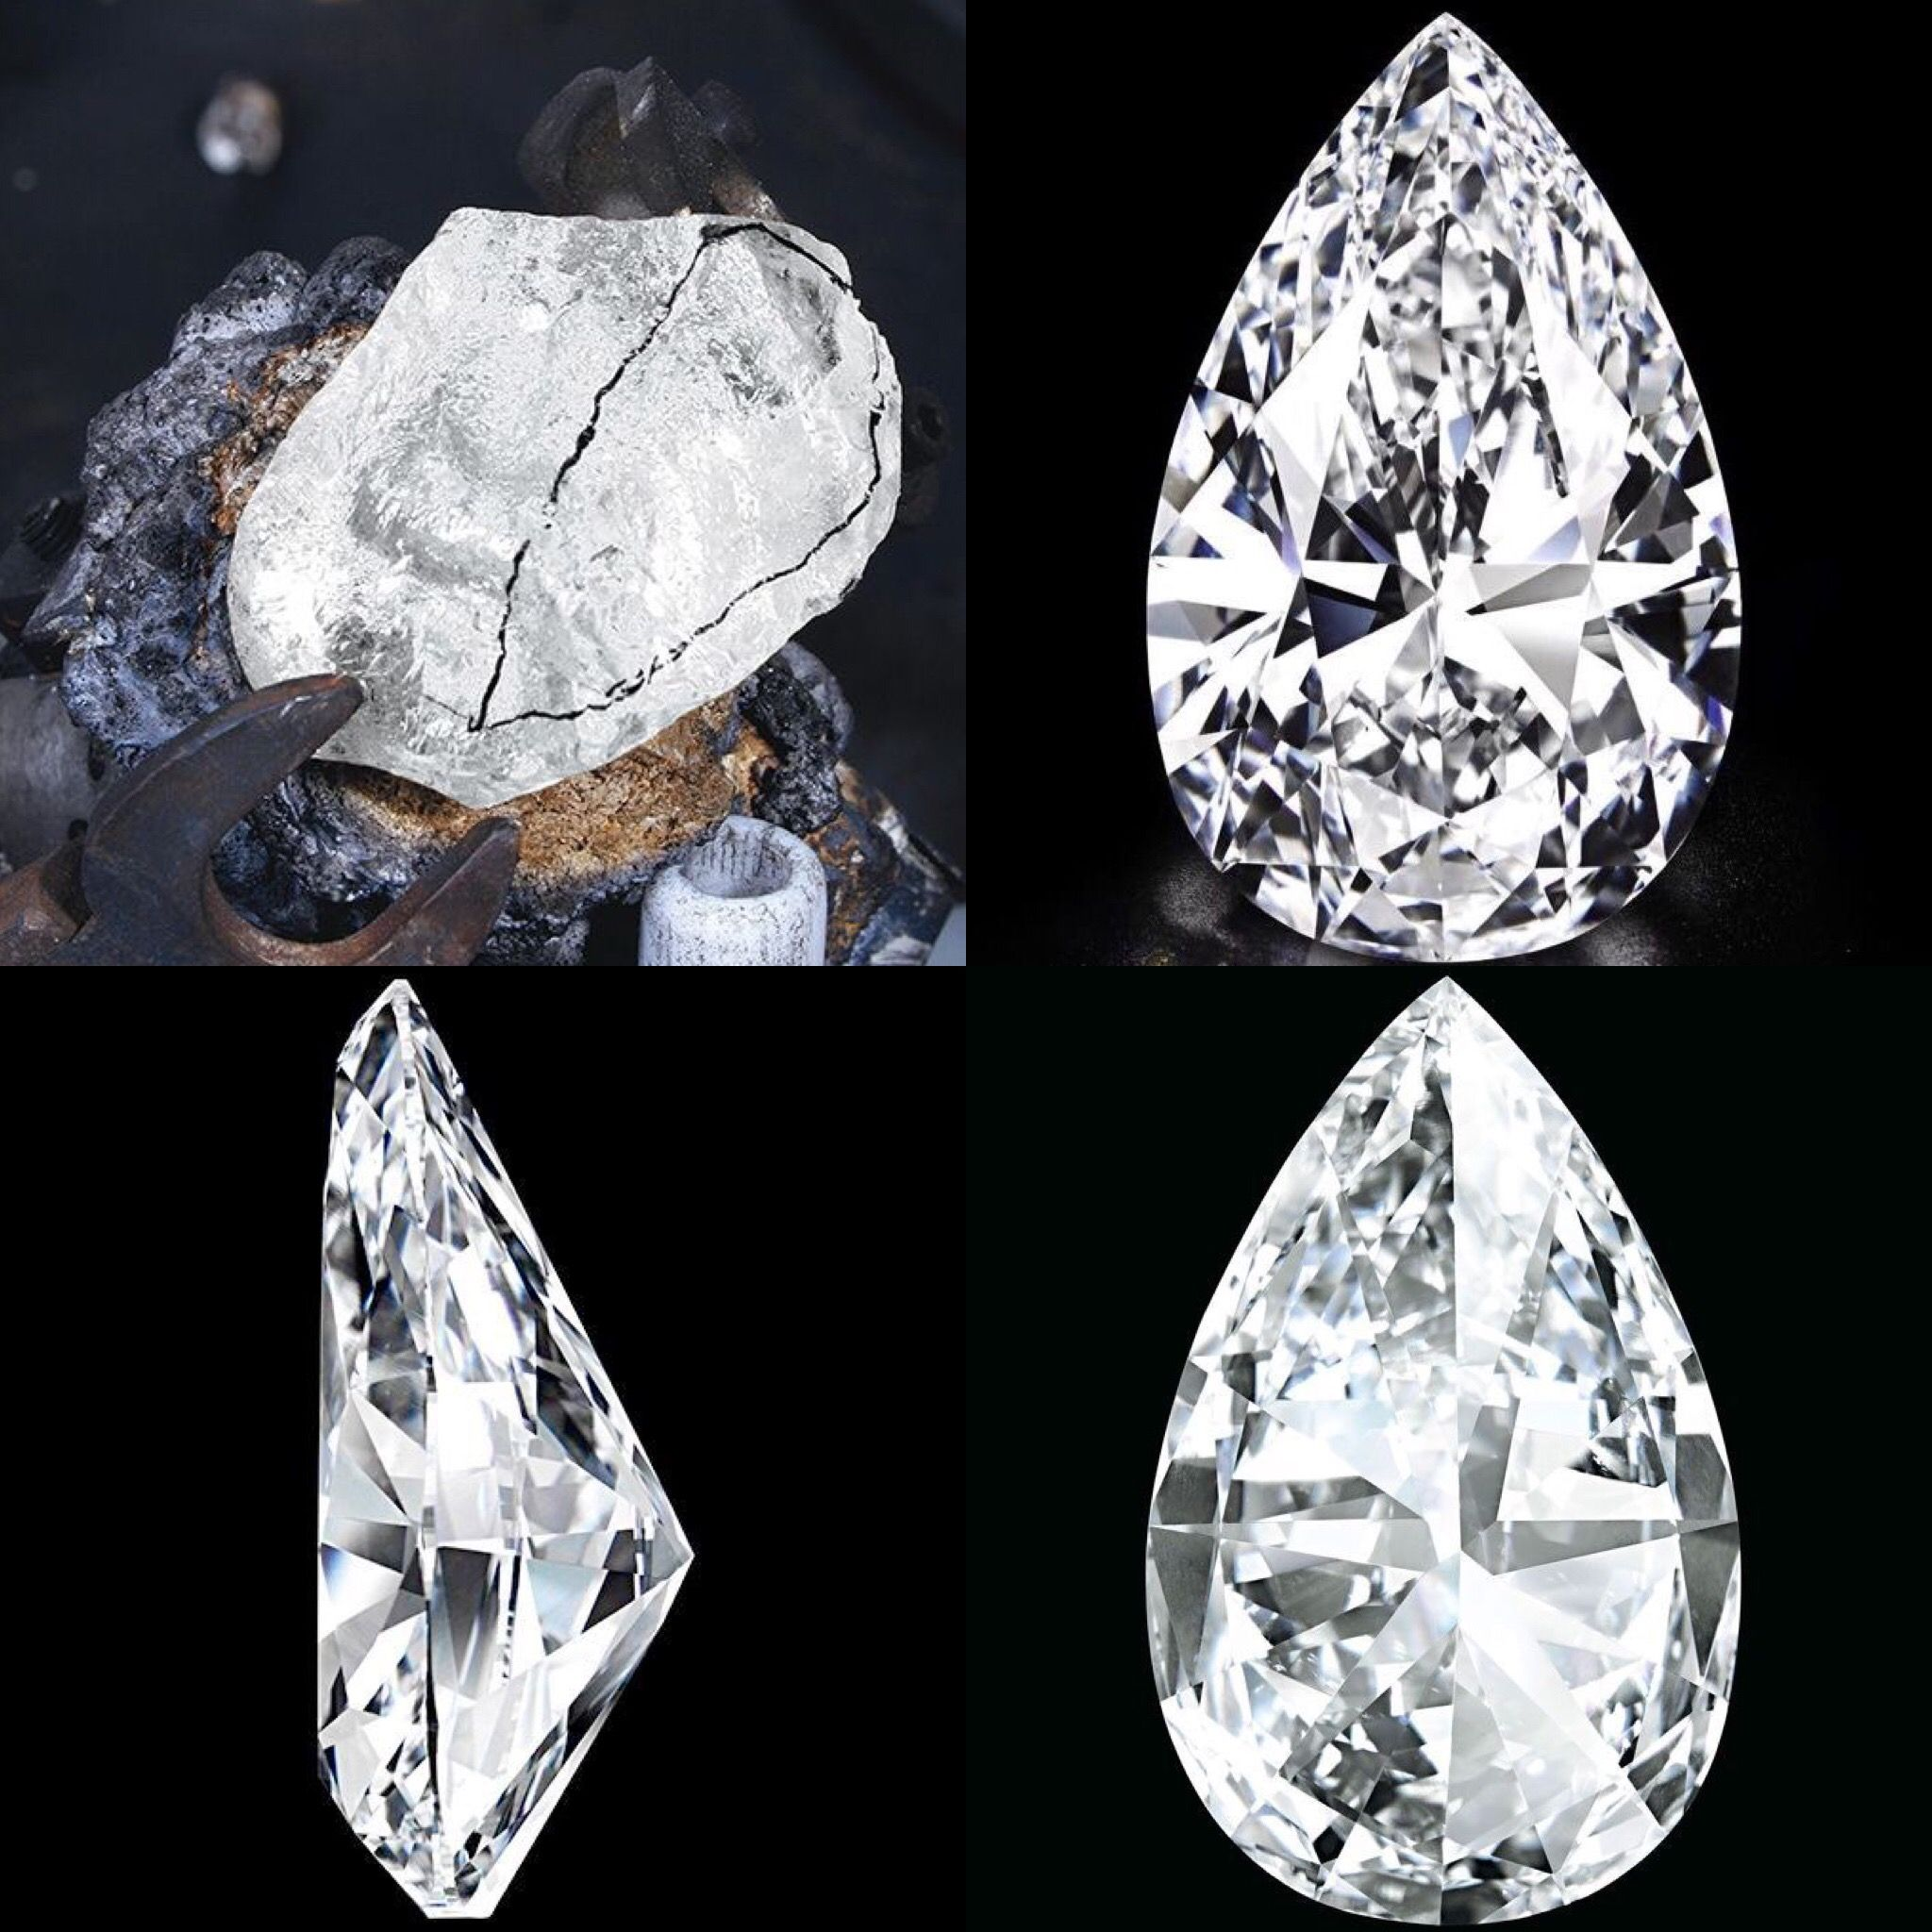 diamond wiki oppenheimer museum file wikimedia commons